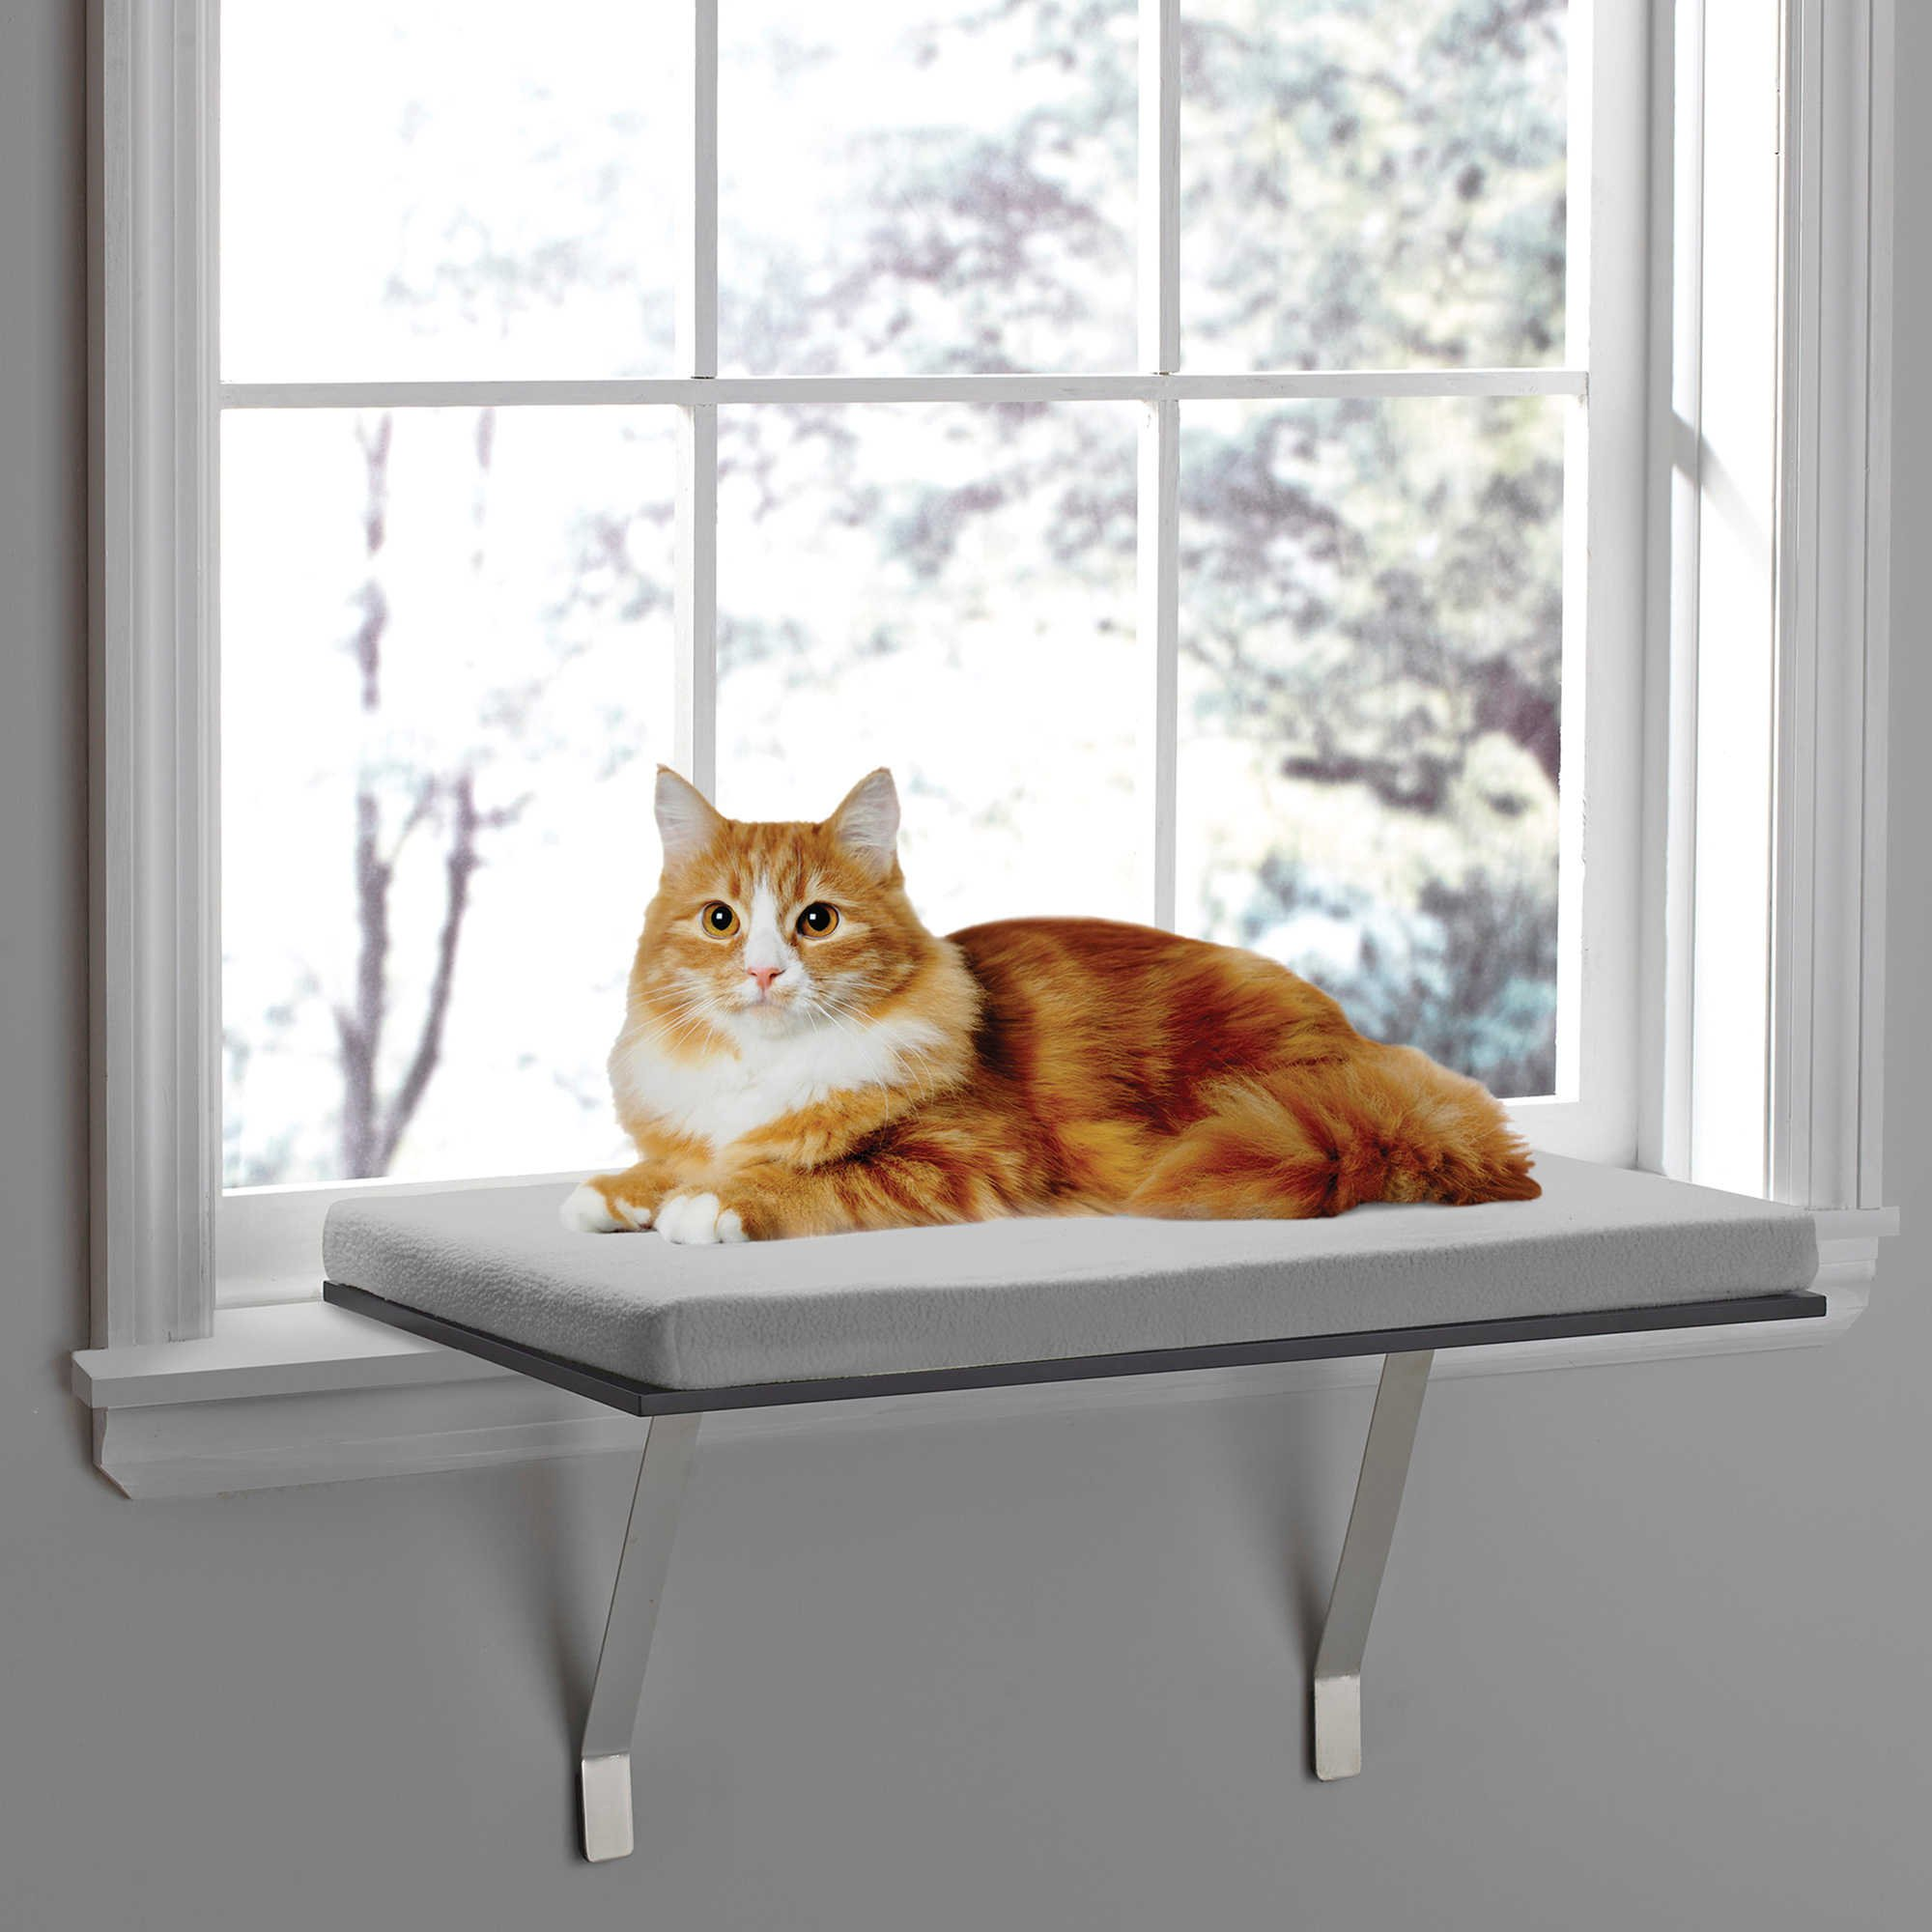 TRM Deluxe Pet Cat Window Seat Perch product image